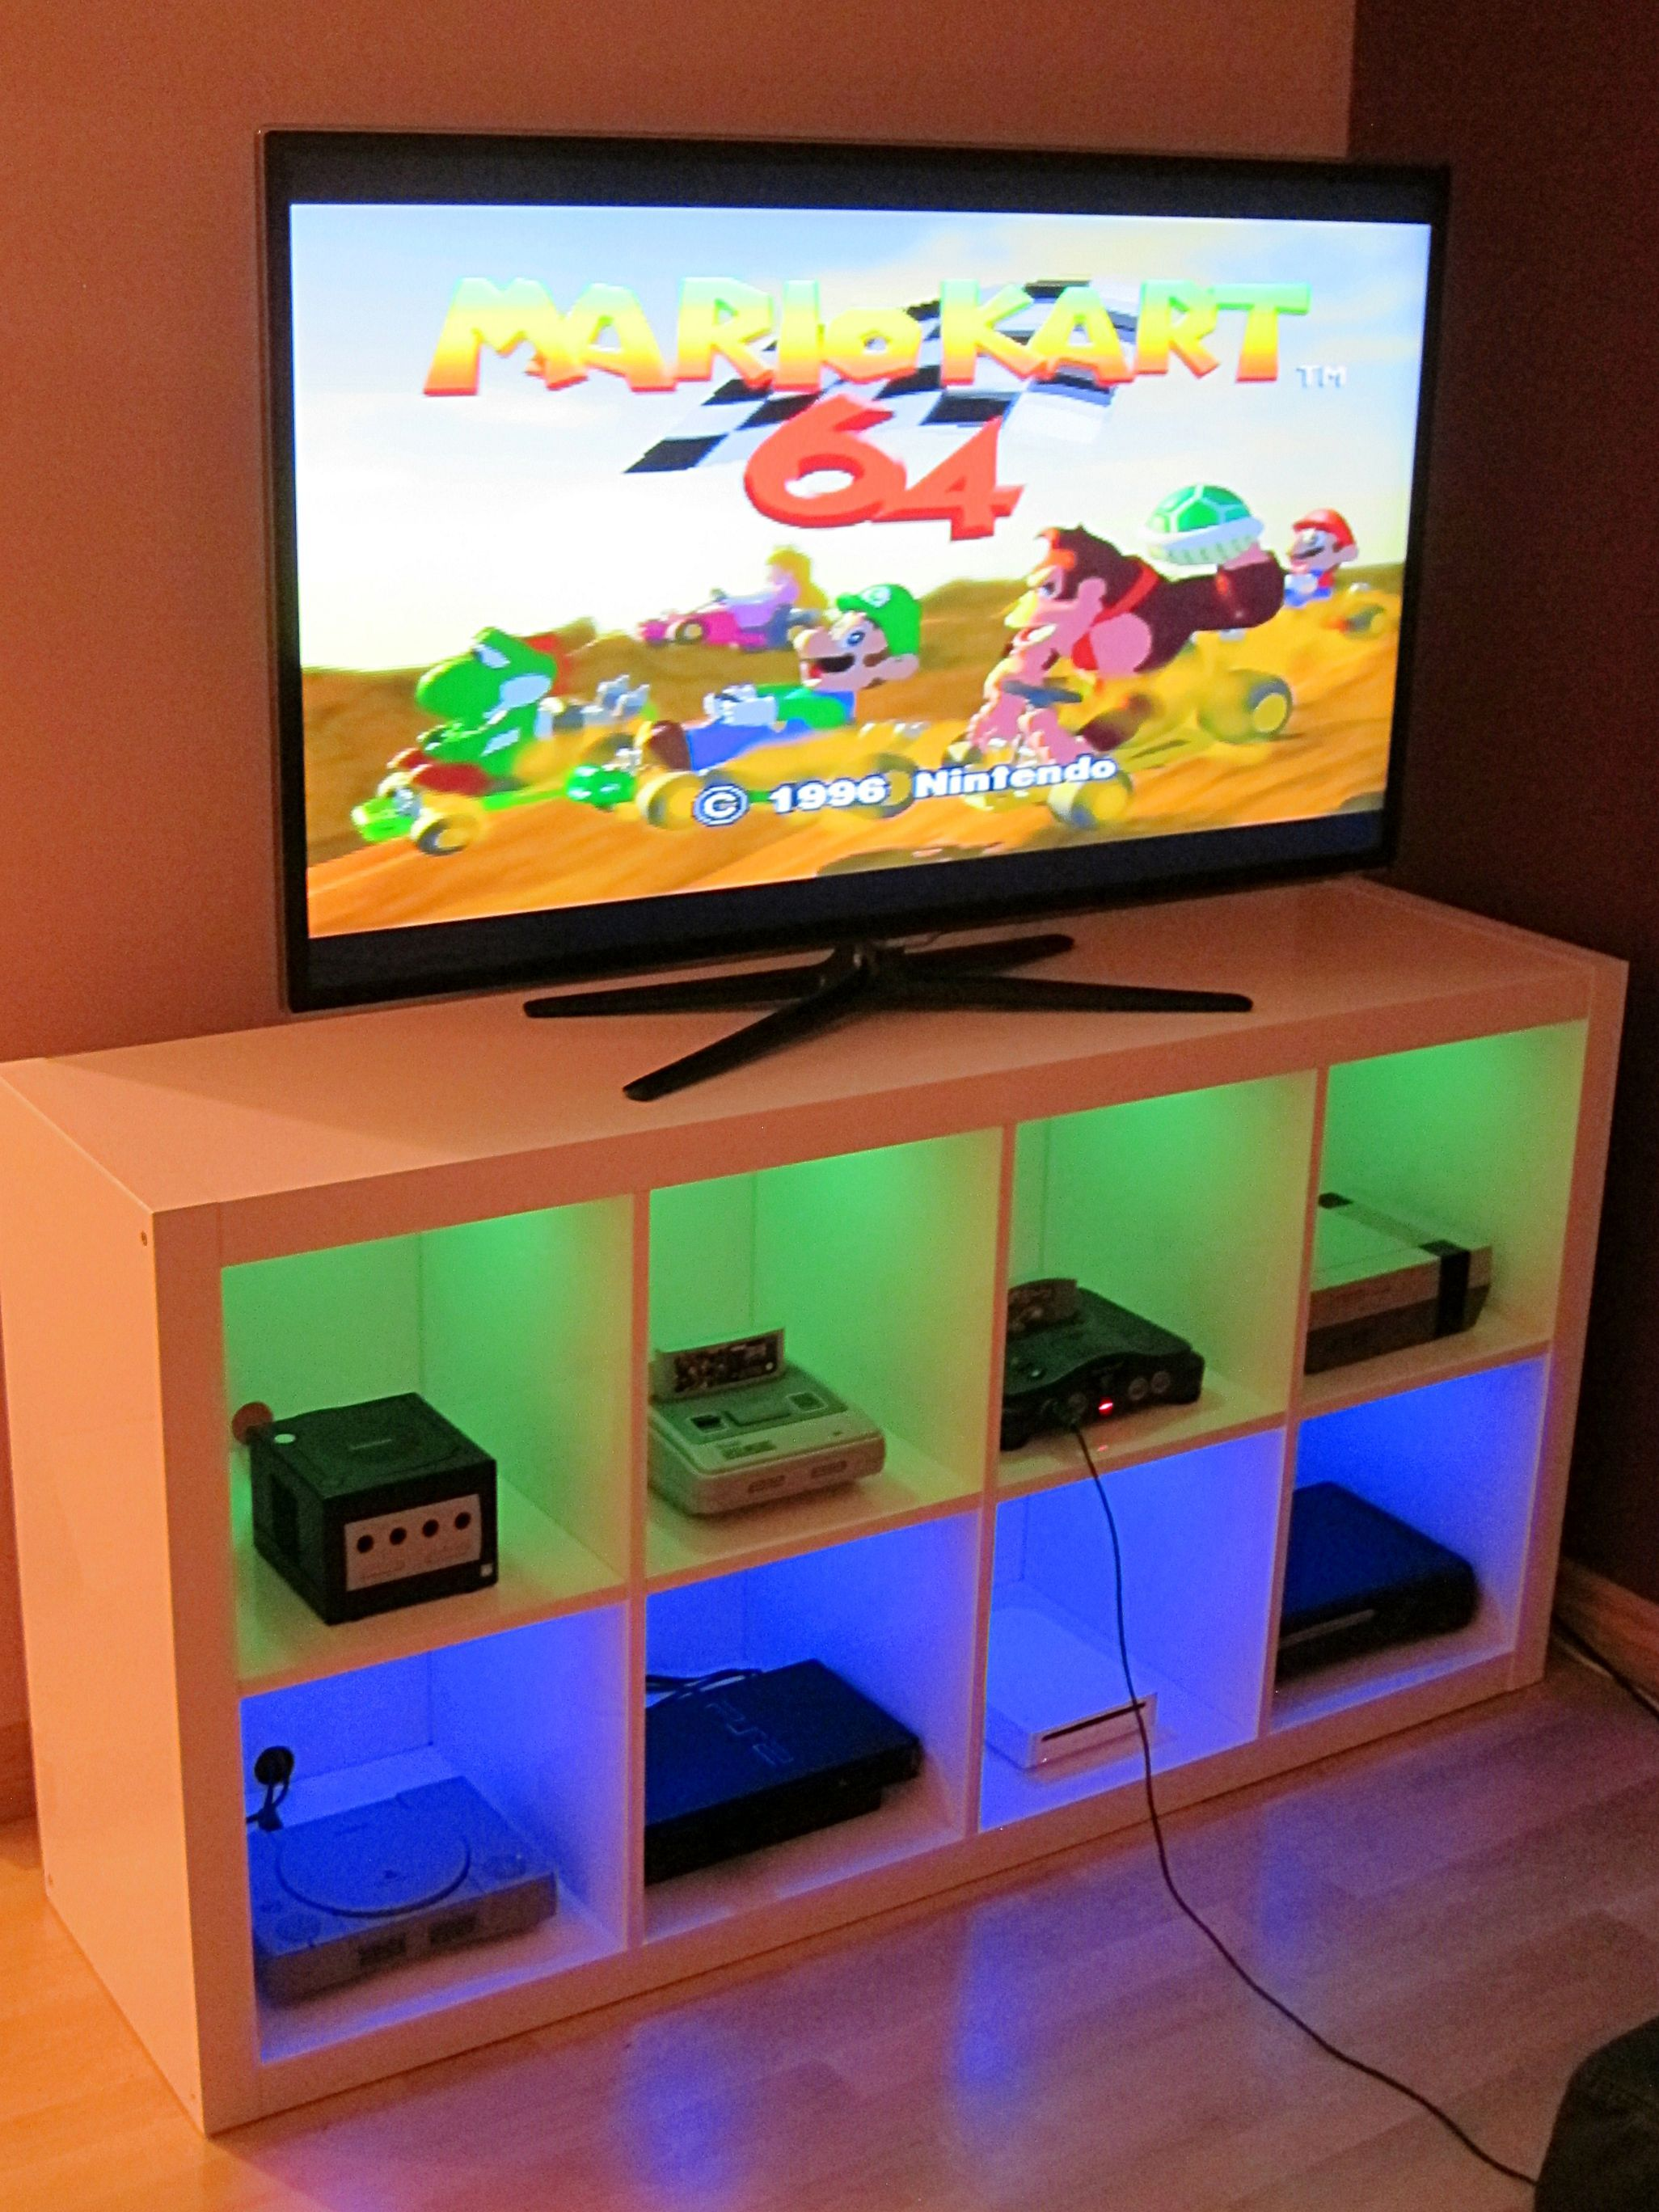 I Modified An Ikea Bookshelf To Make A Console Cabinet Very Happy